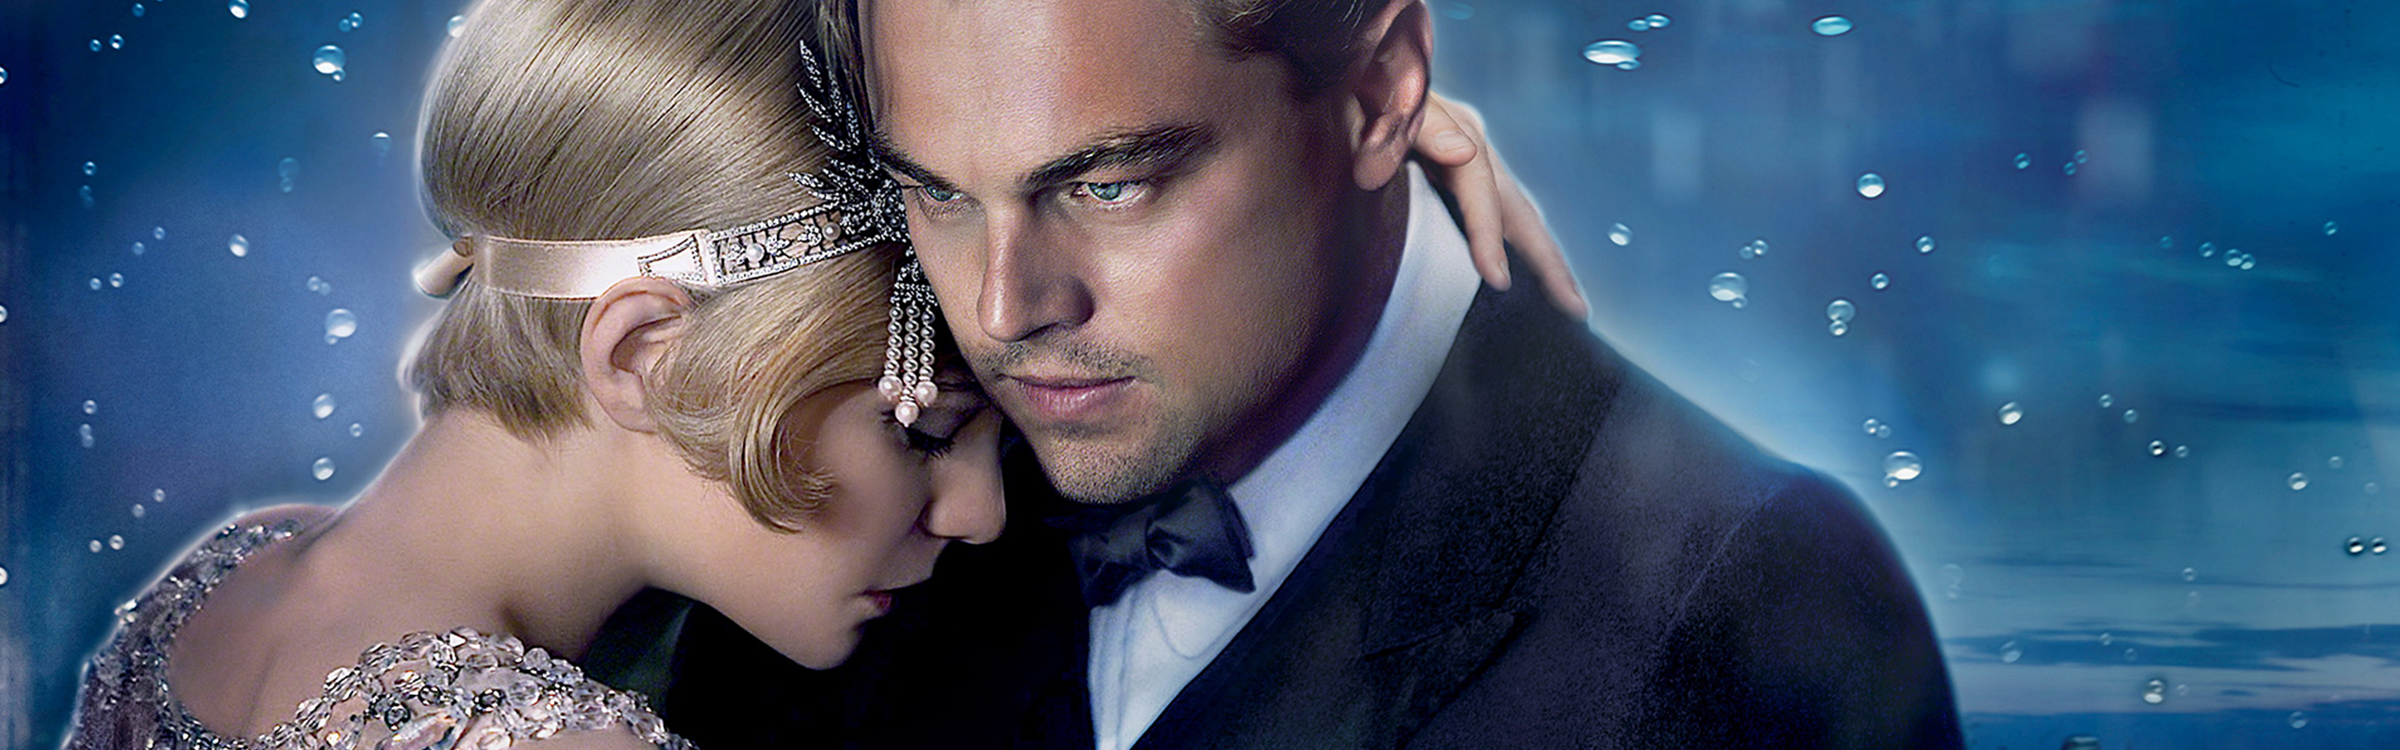 Header smn greatgatsby